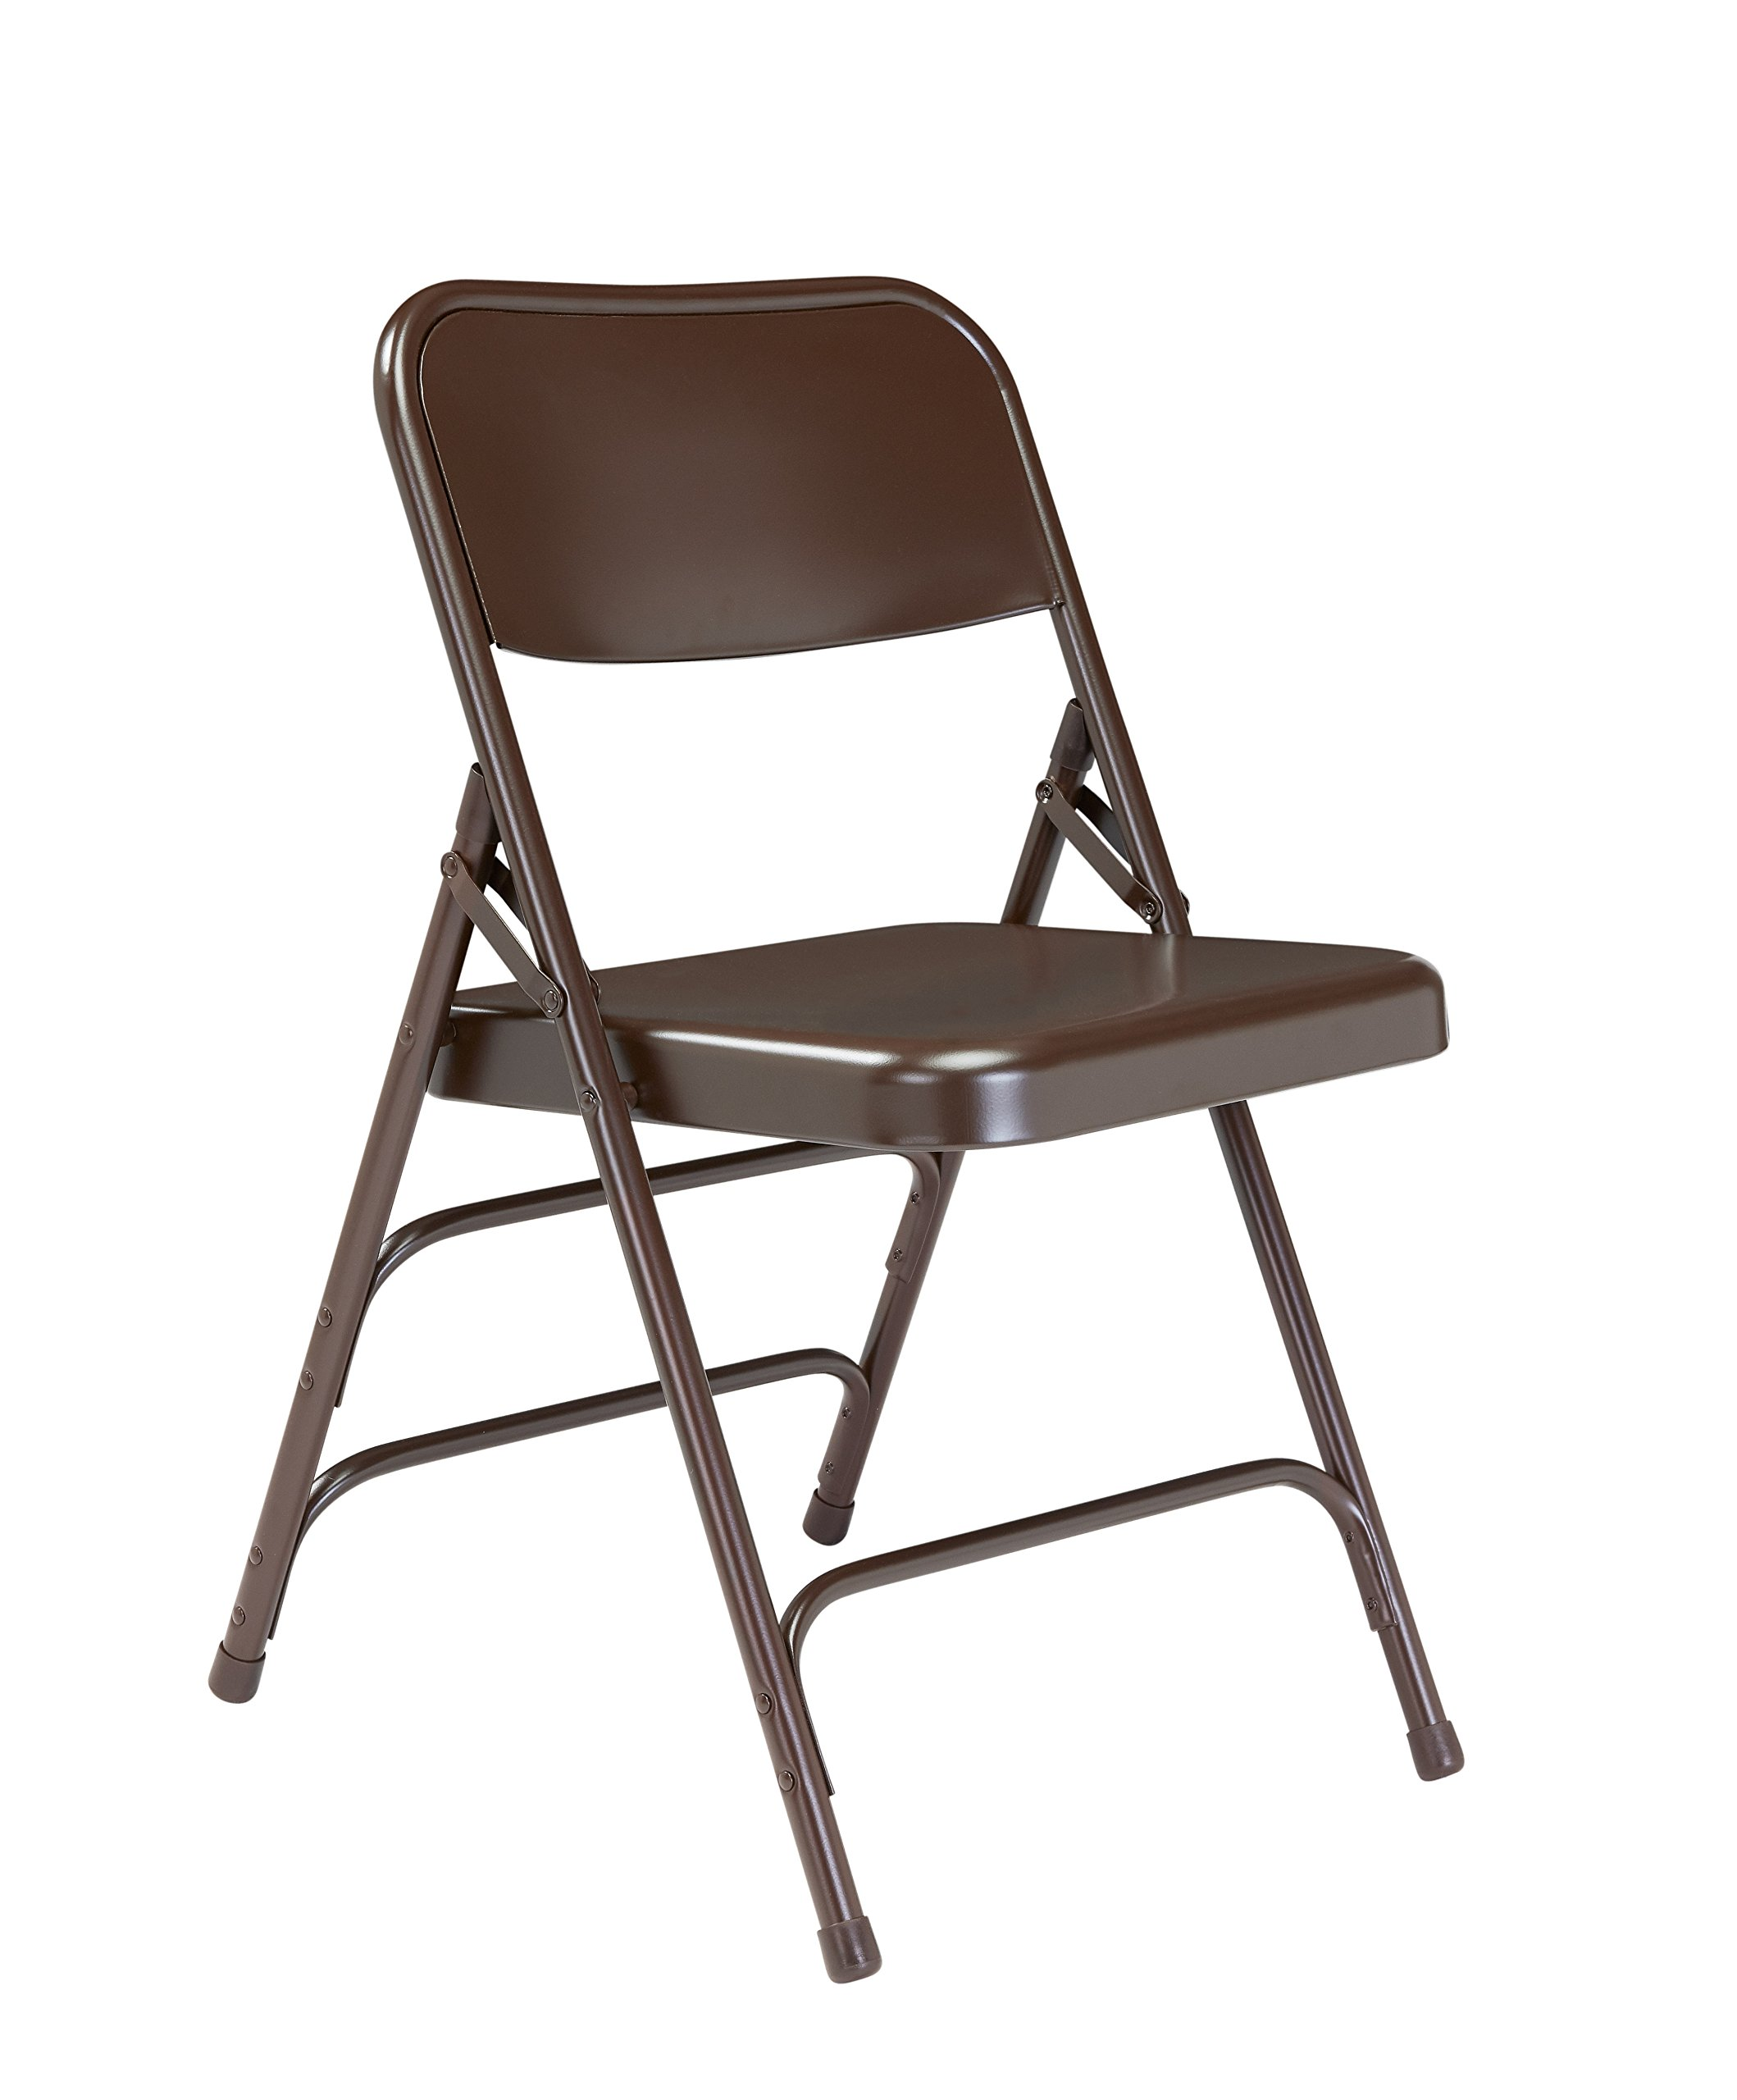 National Public Seating 300 Series All Steel Premium Folding Chair with Triple Brace, 480 lbs Capacity, Brown (Carton of 4) by NPS